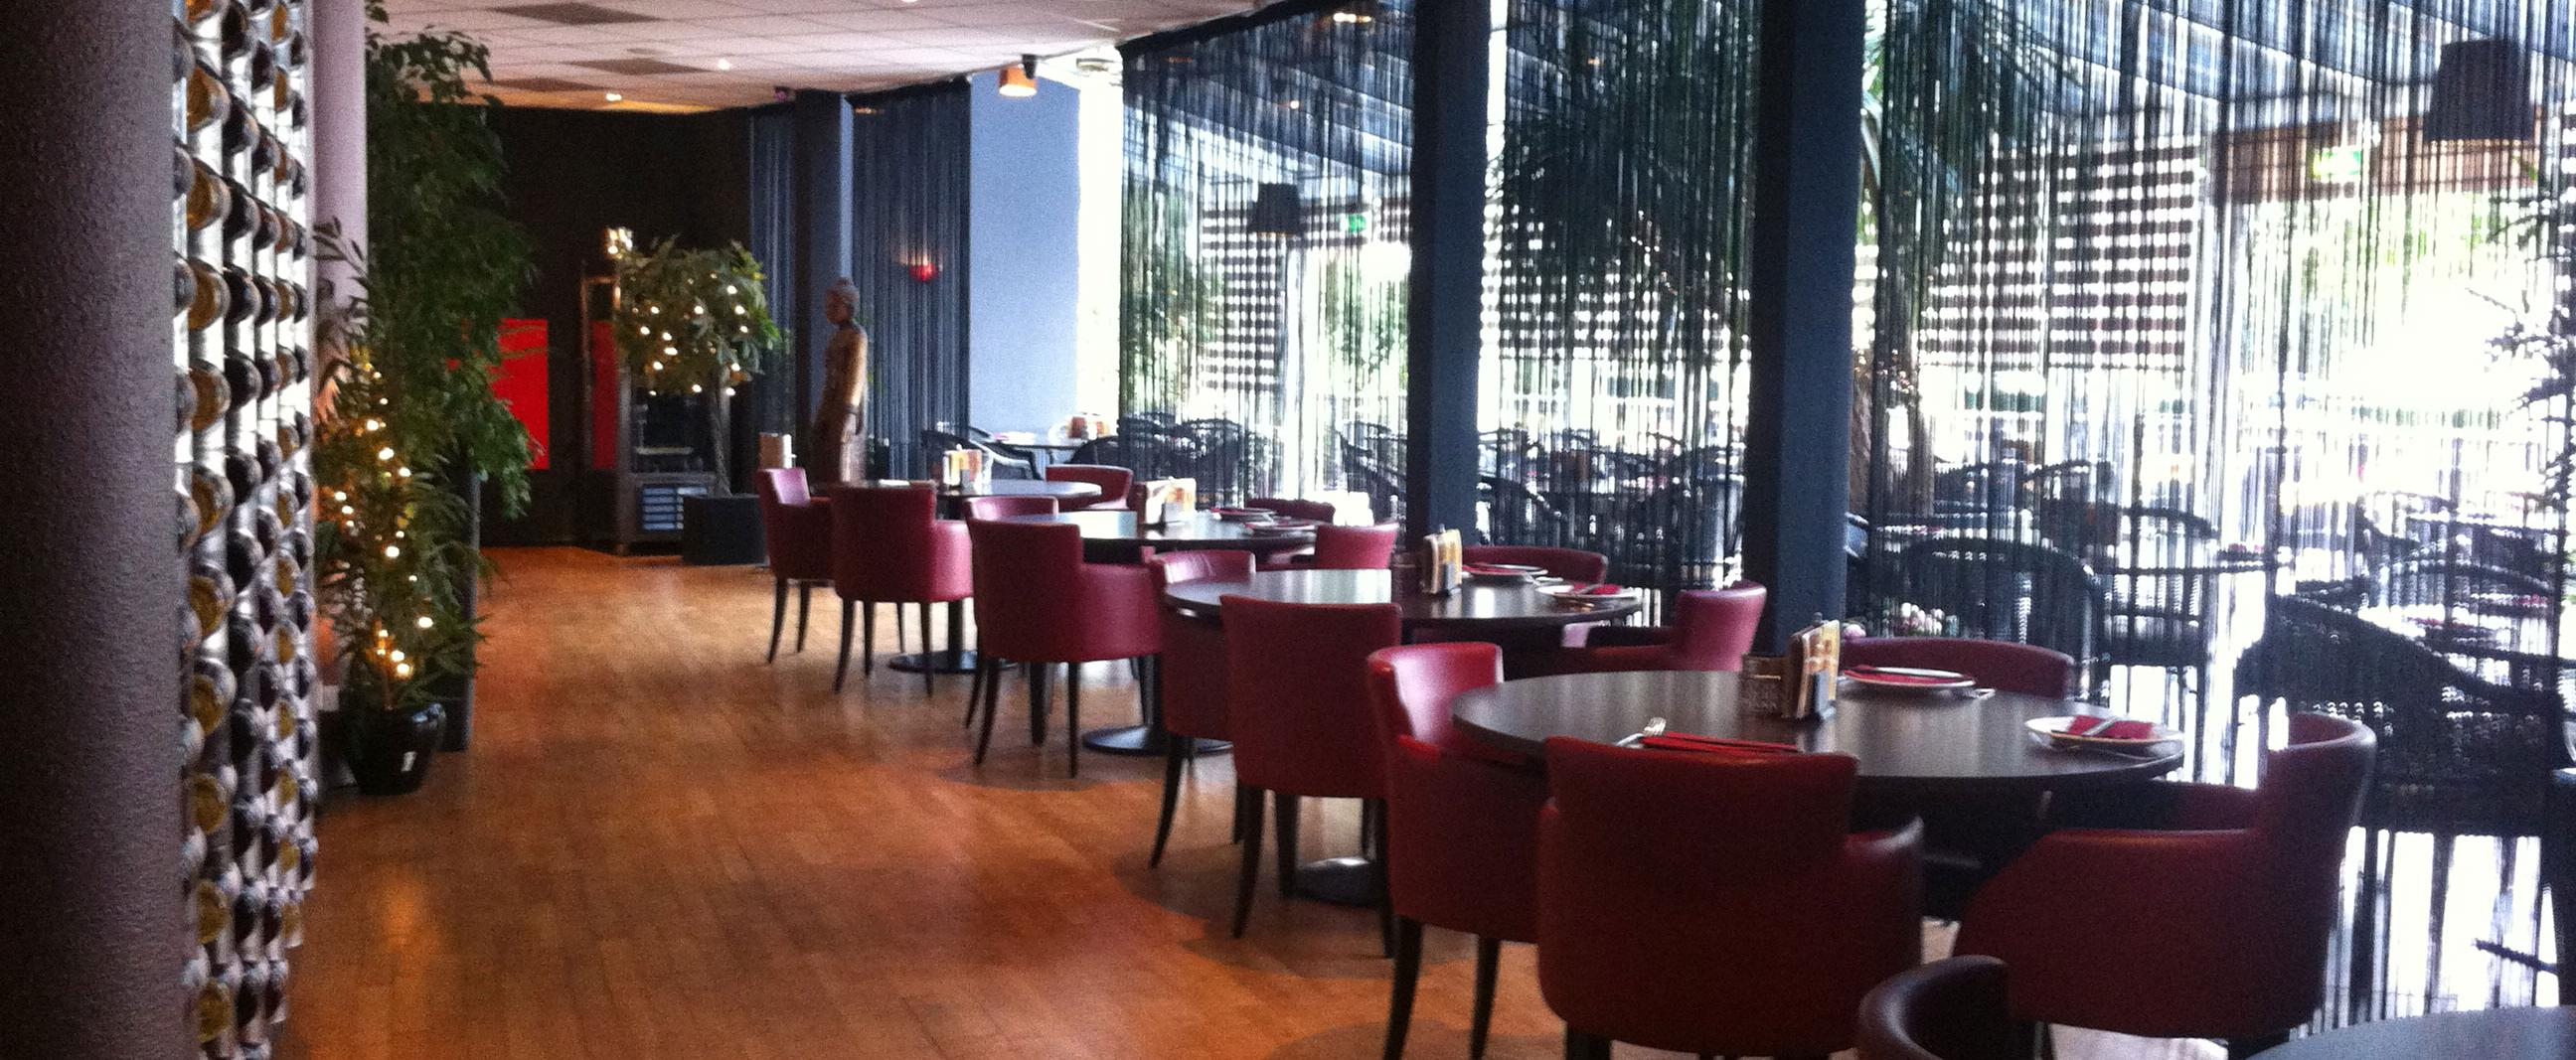 All you can eat in Breda   Asian Fusion Restaurant Merlina